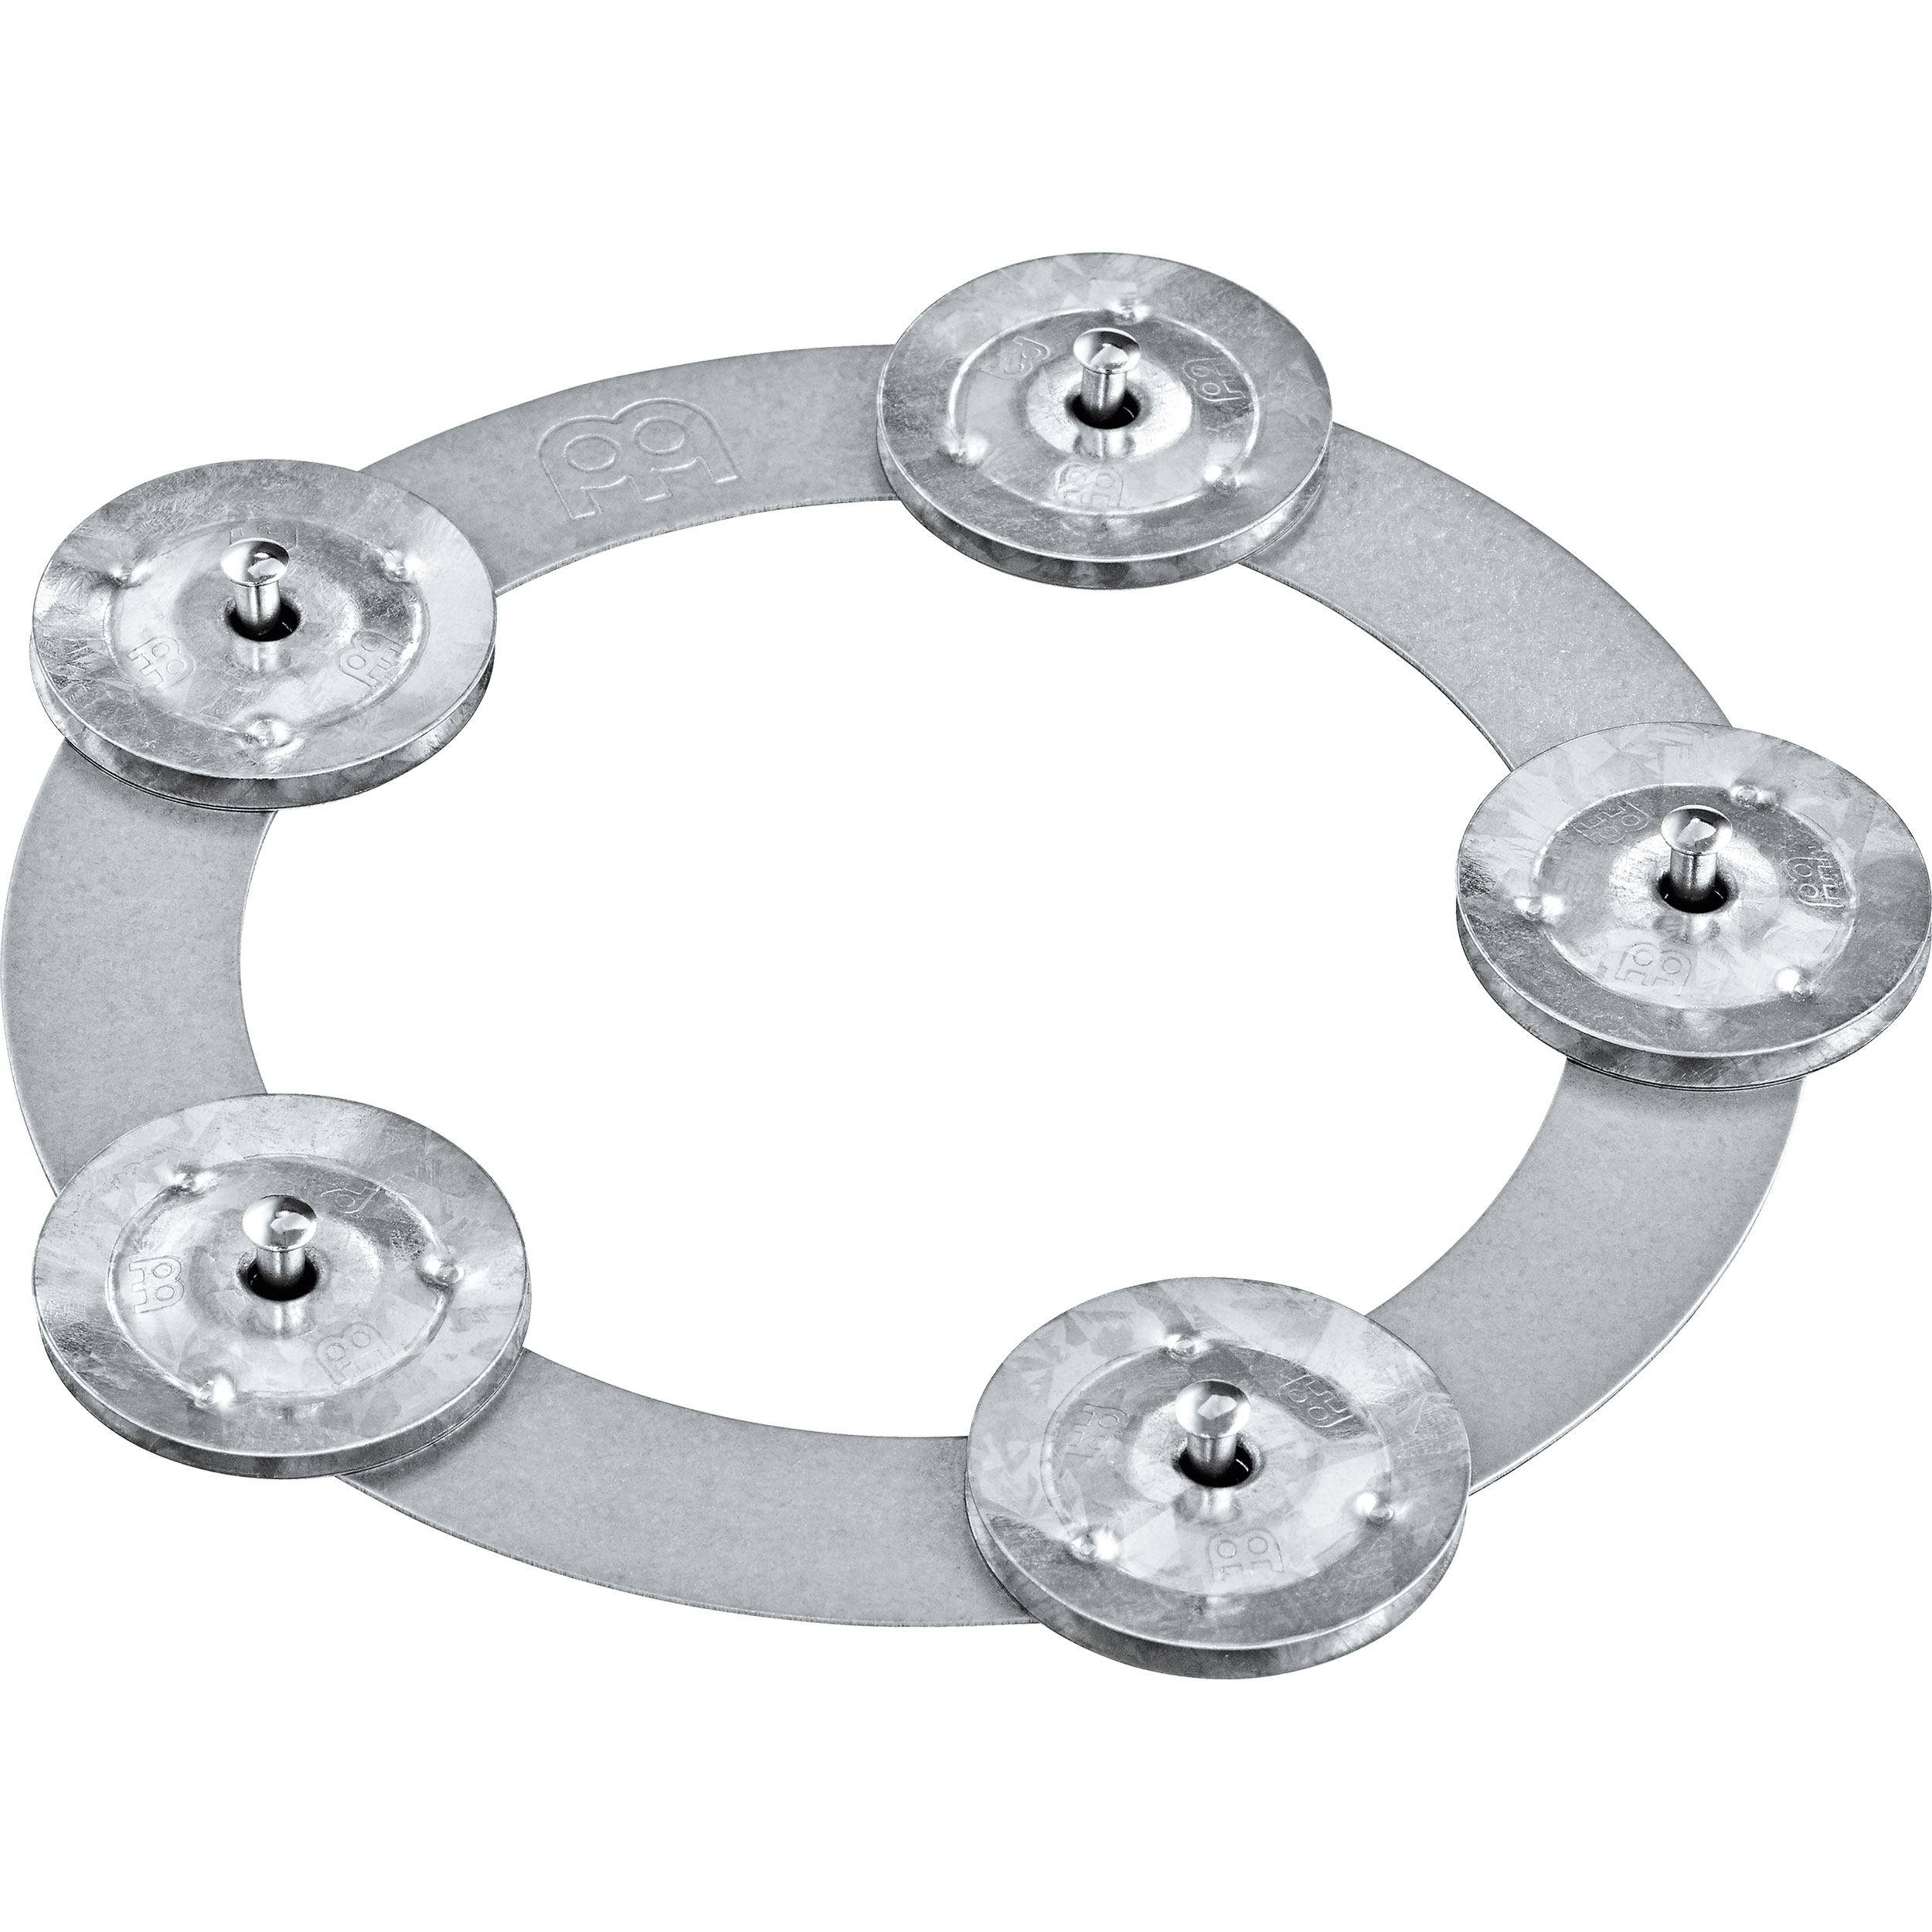 "Meinl 6"" Dry Ching Ring with Zinc Jingles"